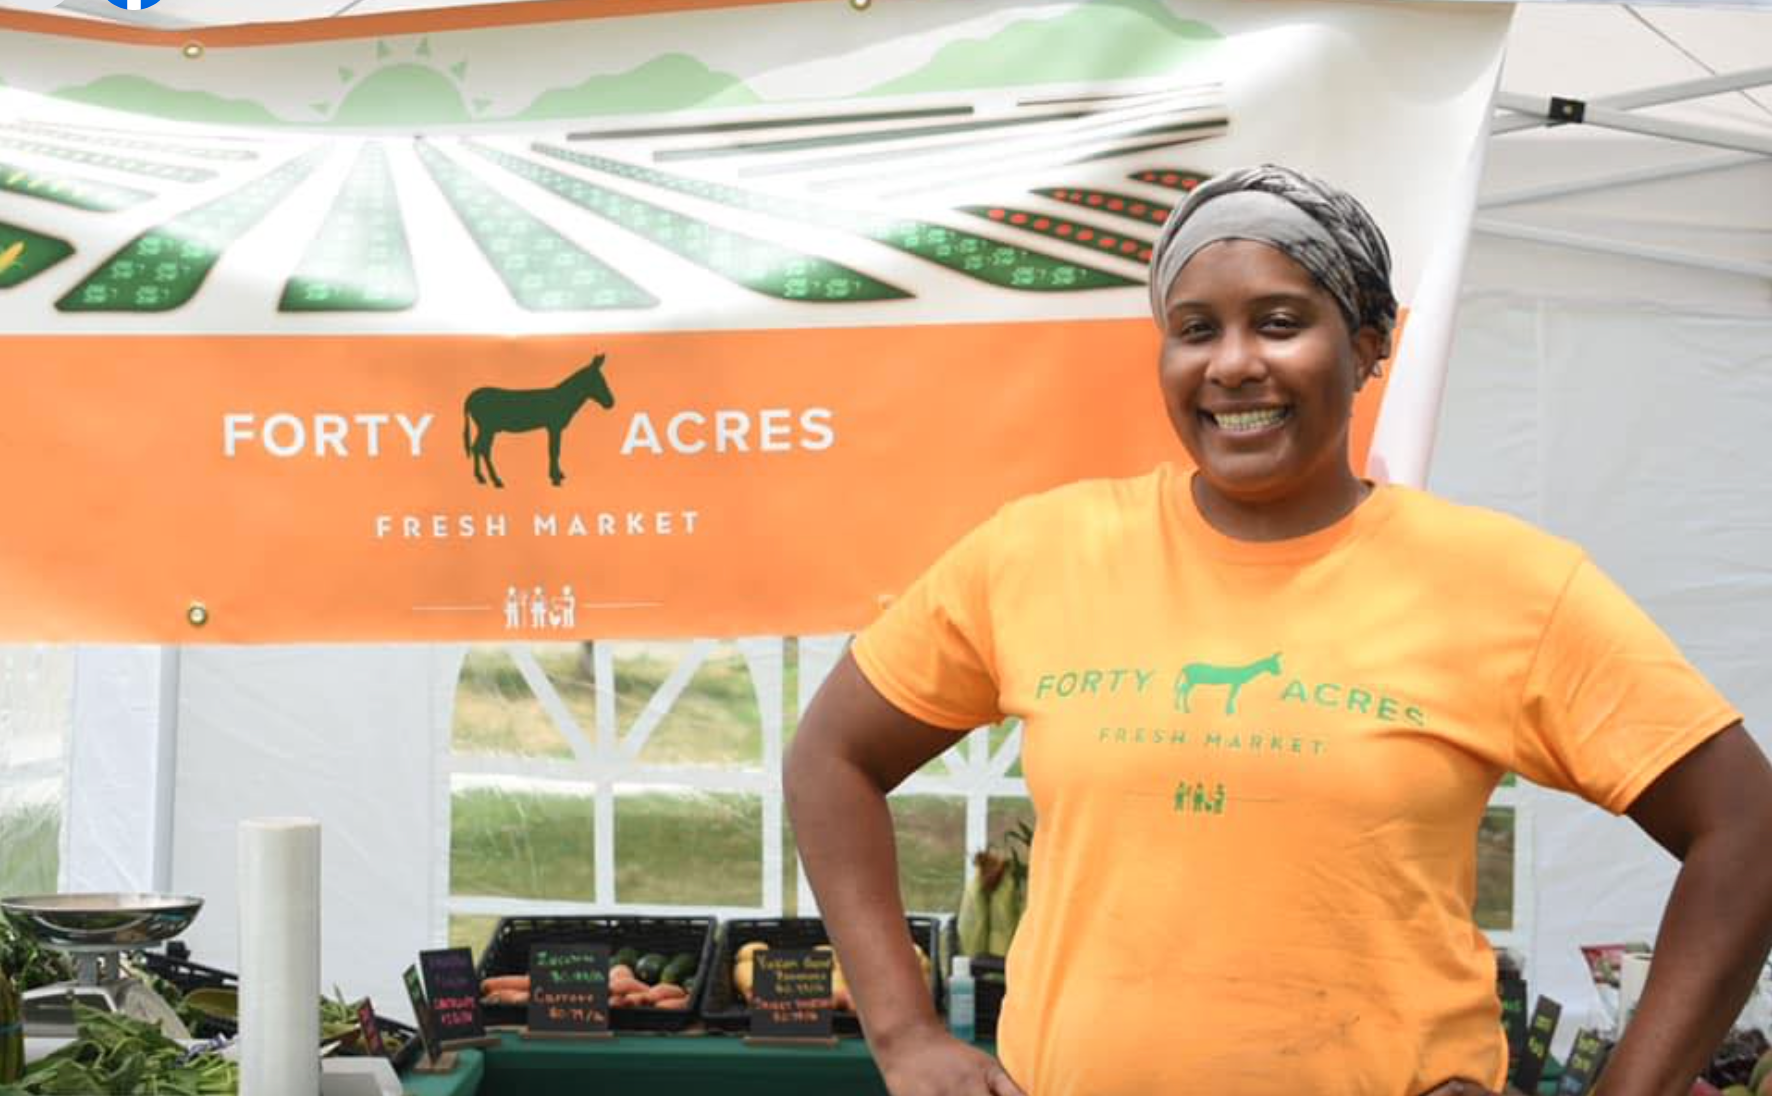 Black Owned Grocery Store Coming To Austin After Save A Lot Closes In West Side Food Desert